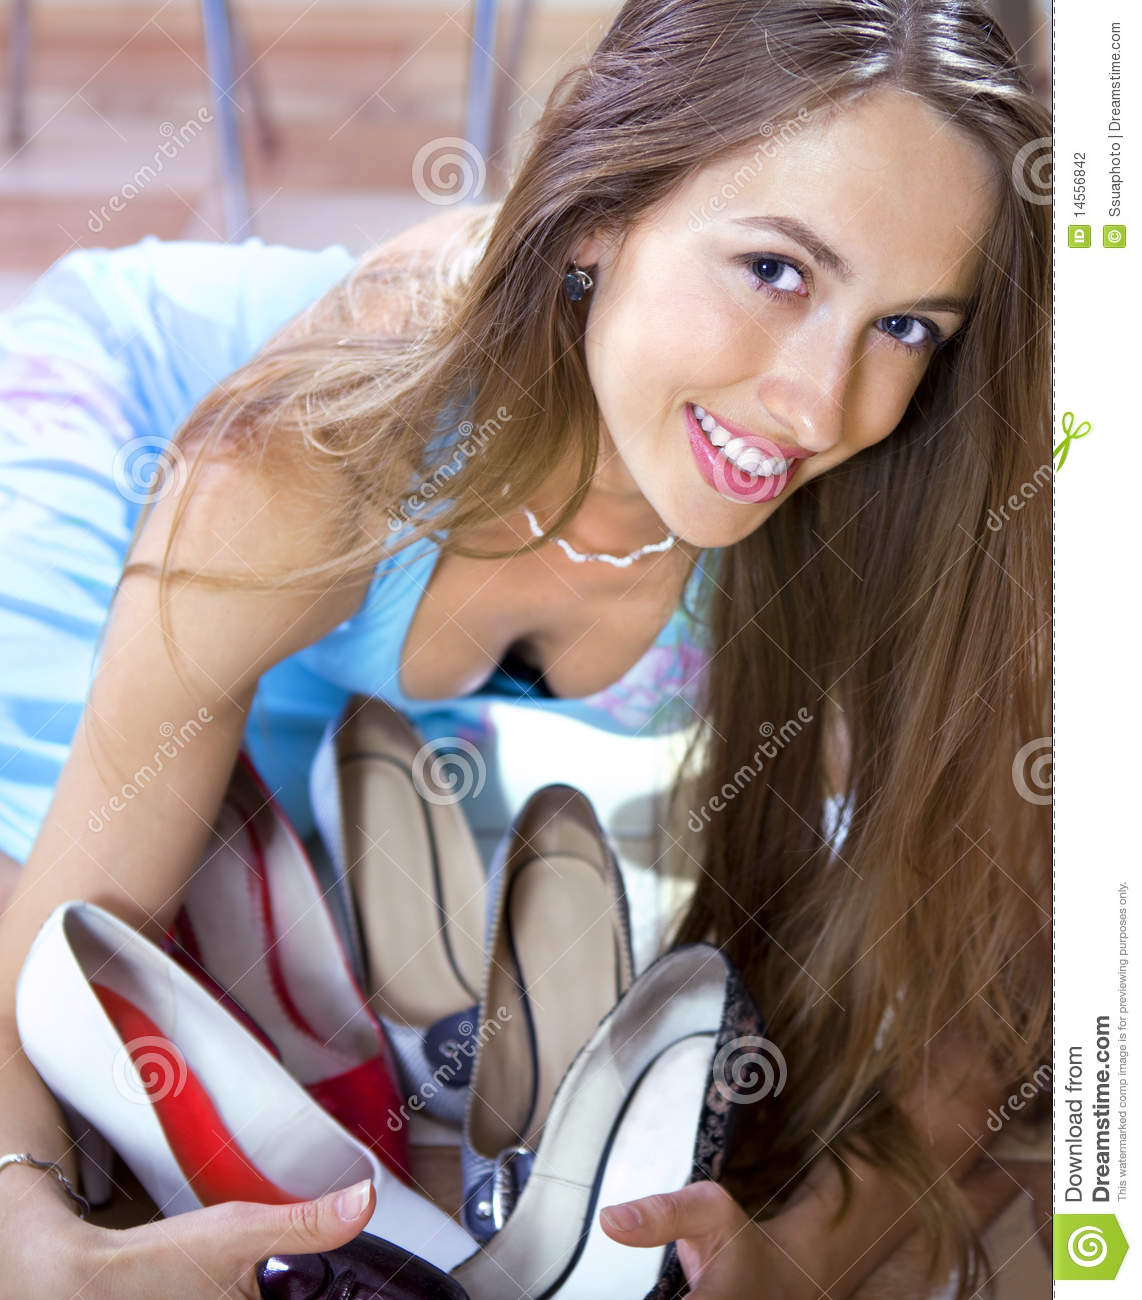 Woman with shoes in shopping mall